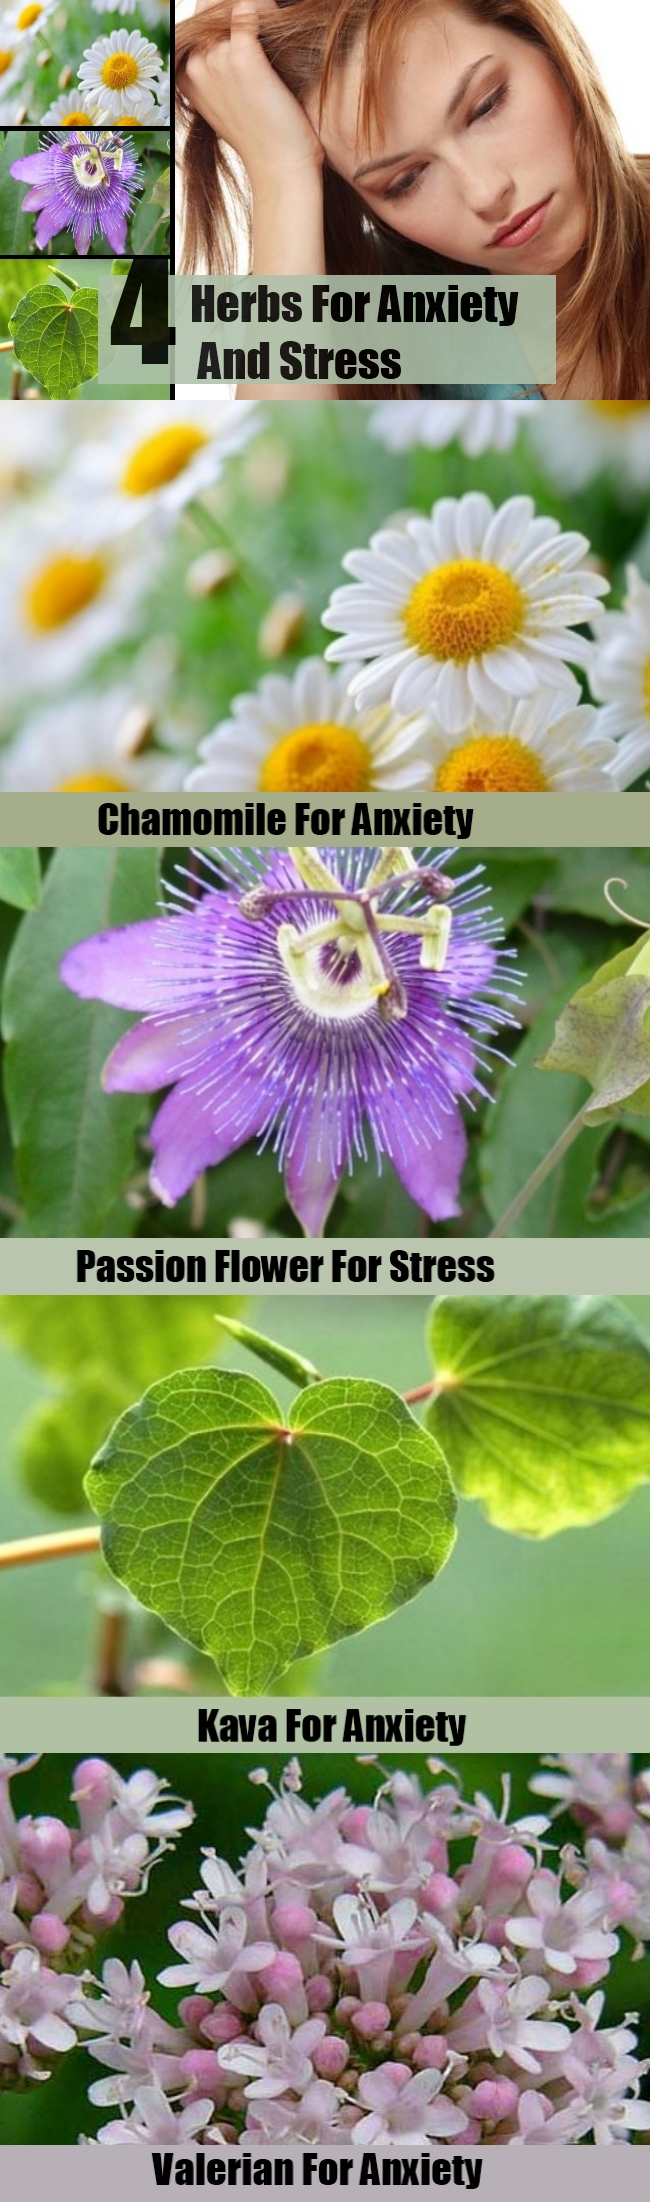 4 Herbs For Anxiety And Stress